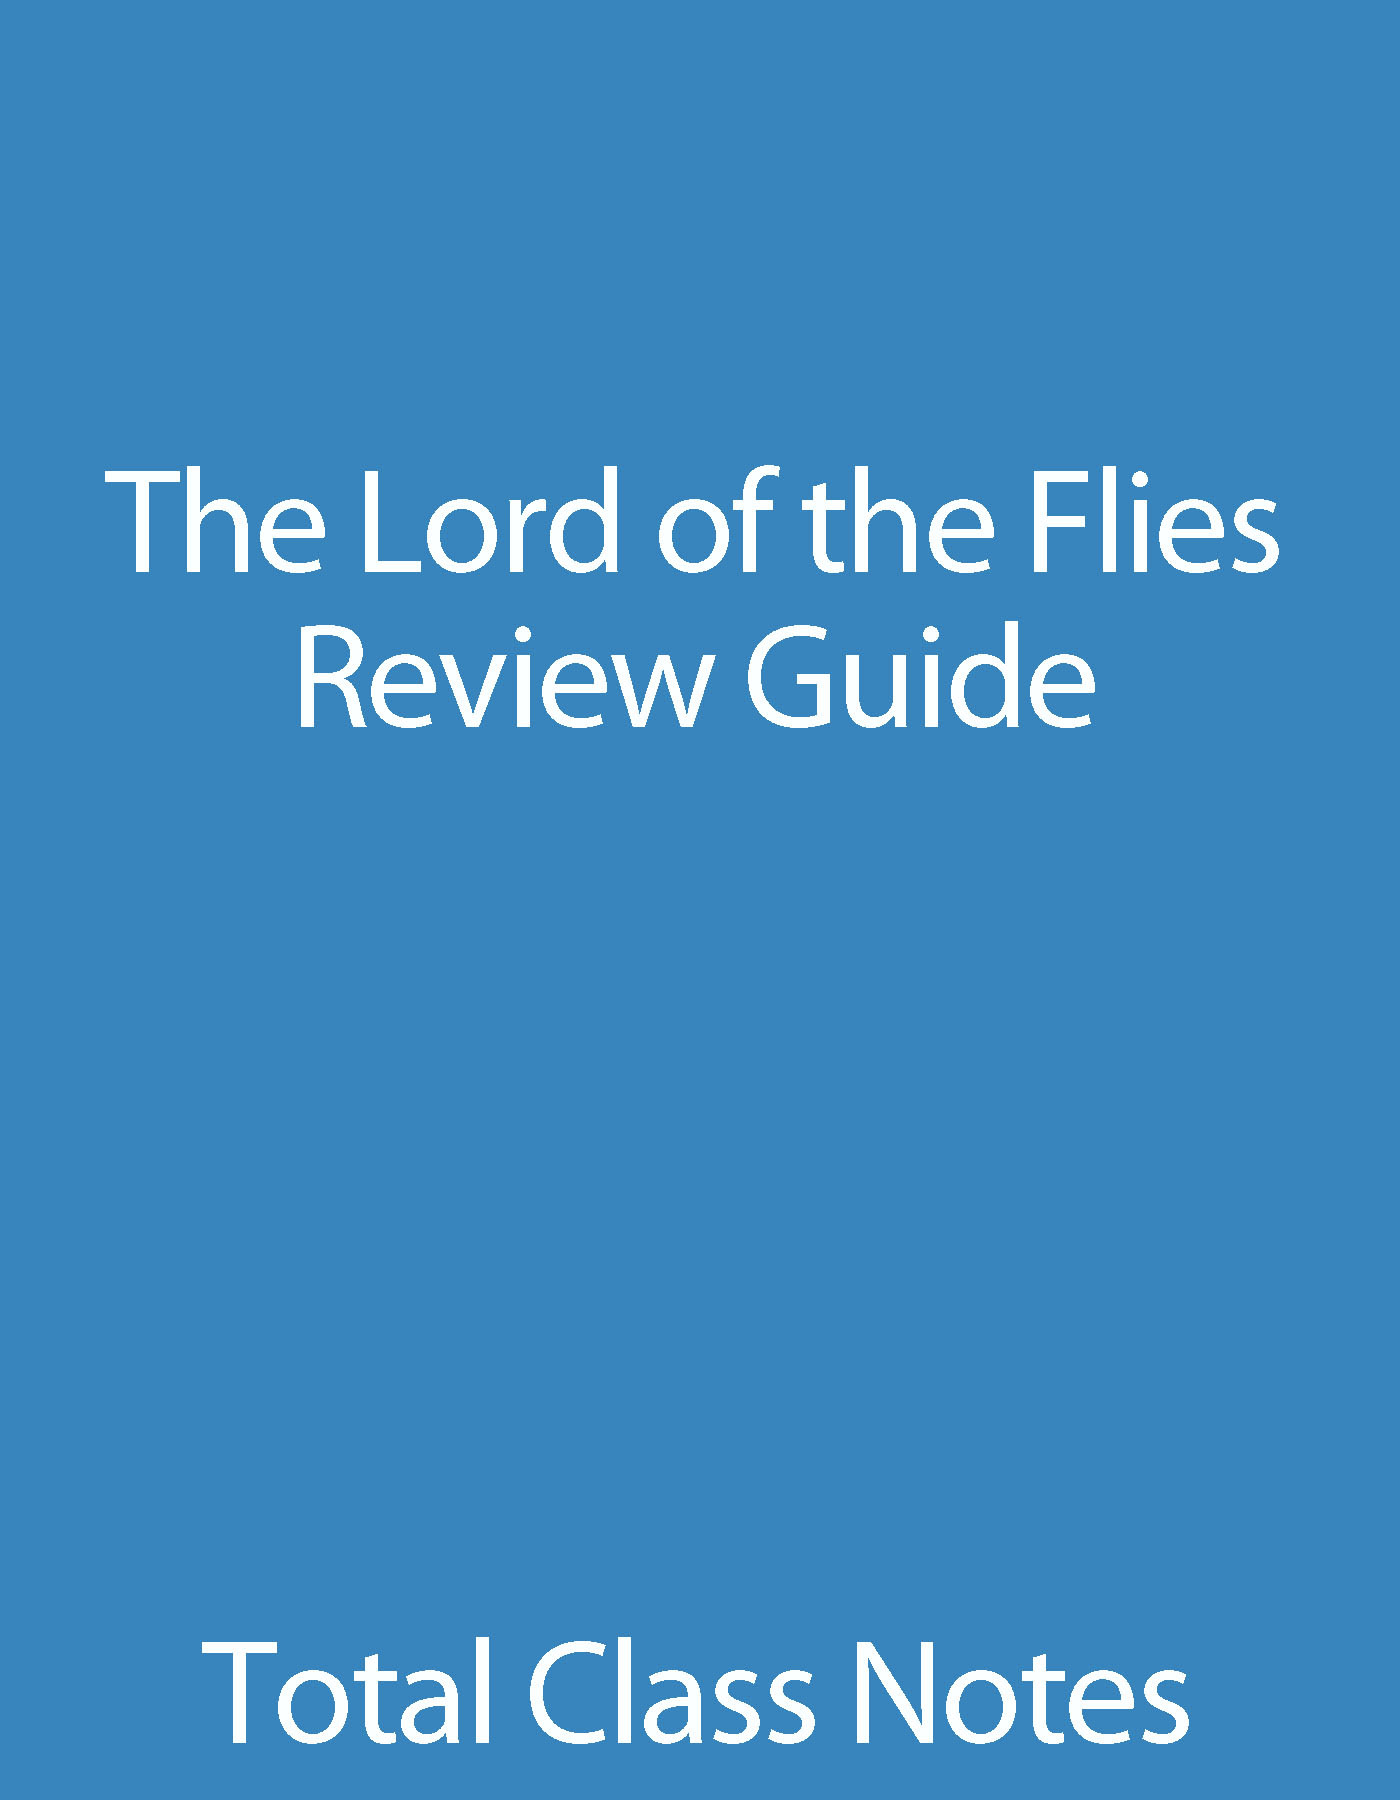 Lord of the Flies: Review Guide